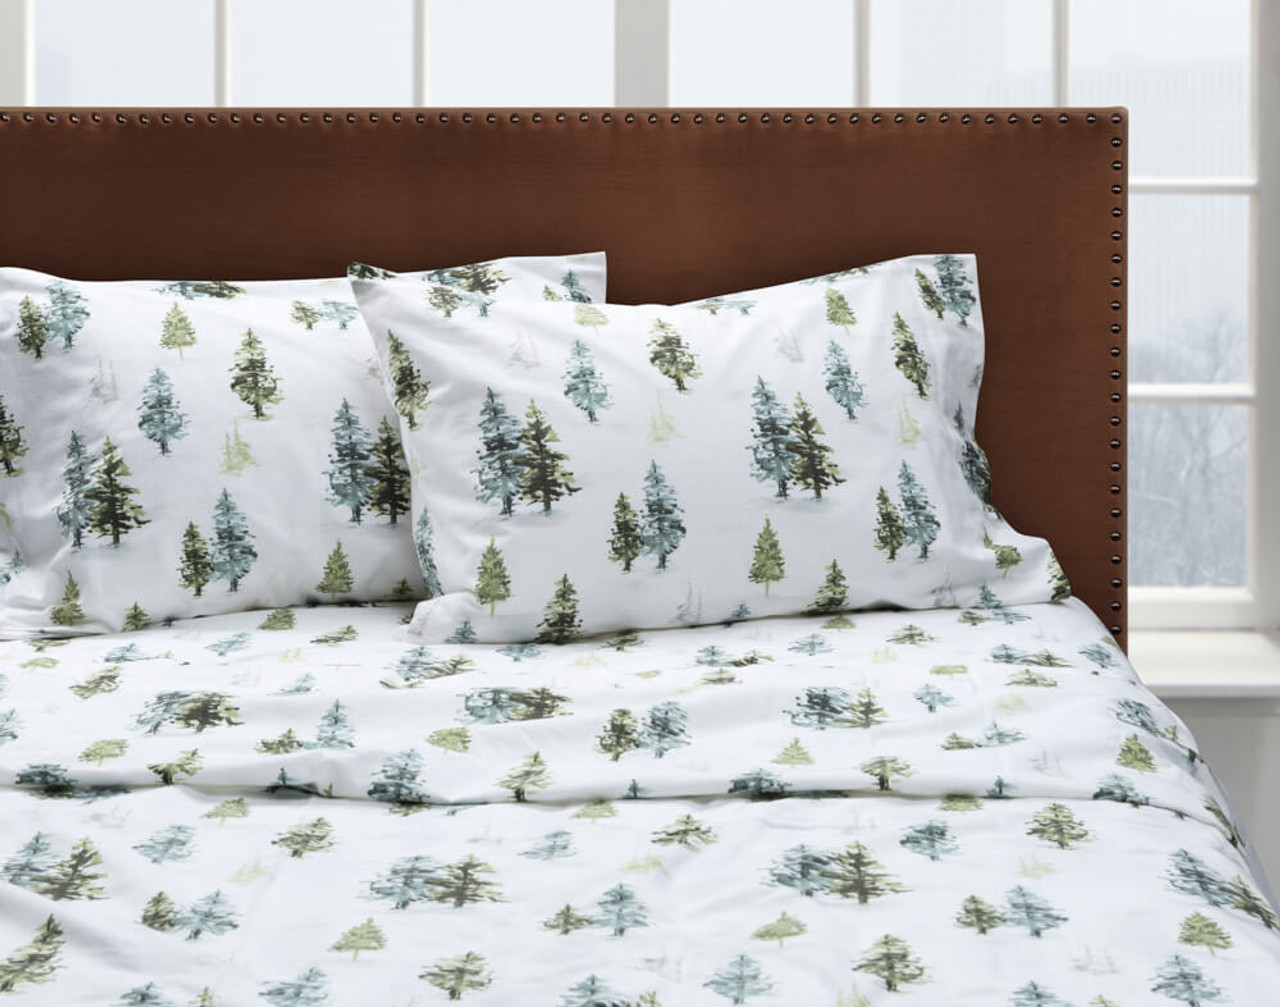 Front view of our Treeline Flannel Cotton Sheet Set dressed over a bed.